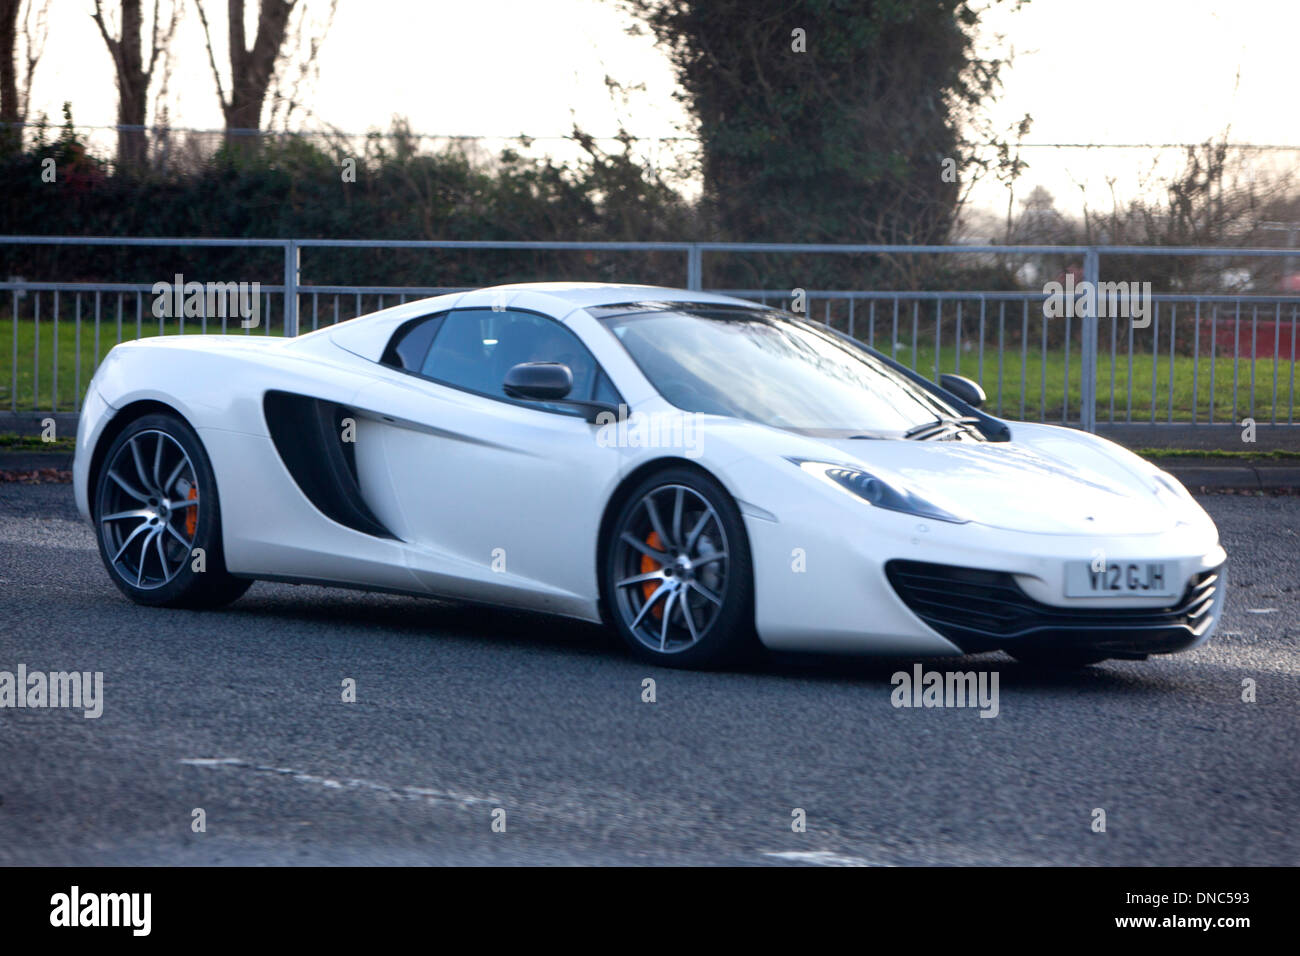 White McLaren MP4-12C Stock Photo: 64806479 - Alamy